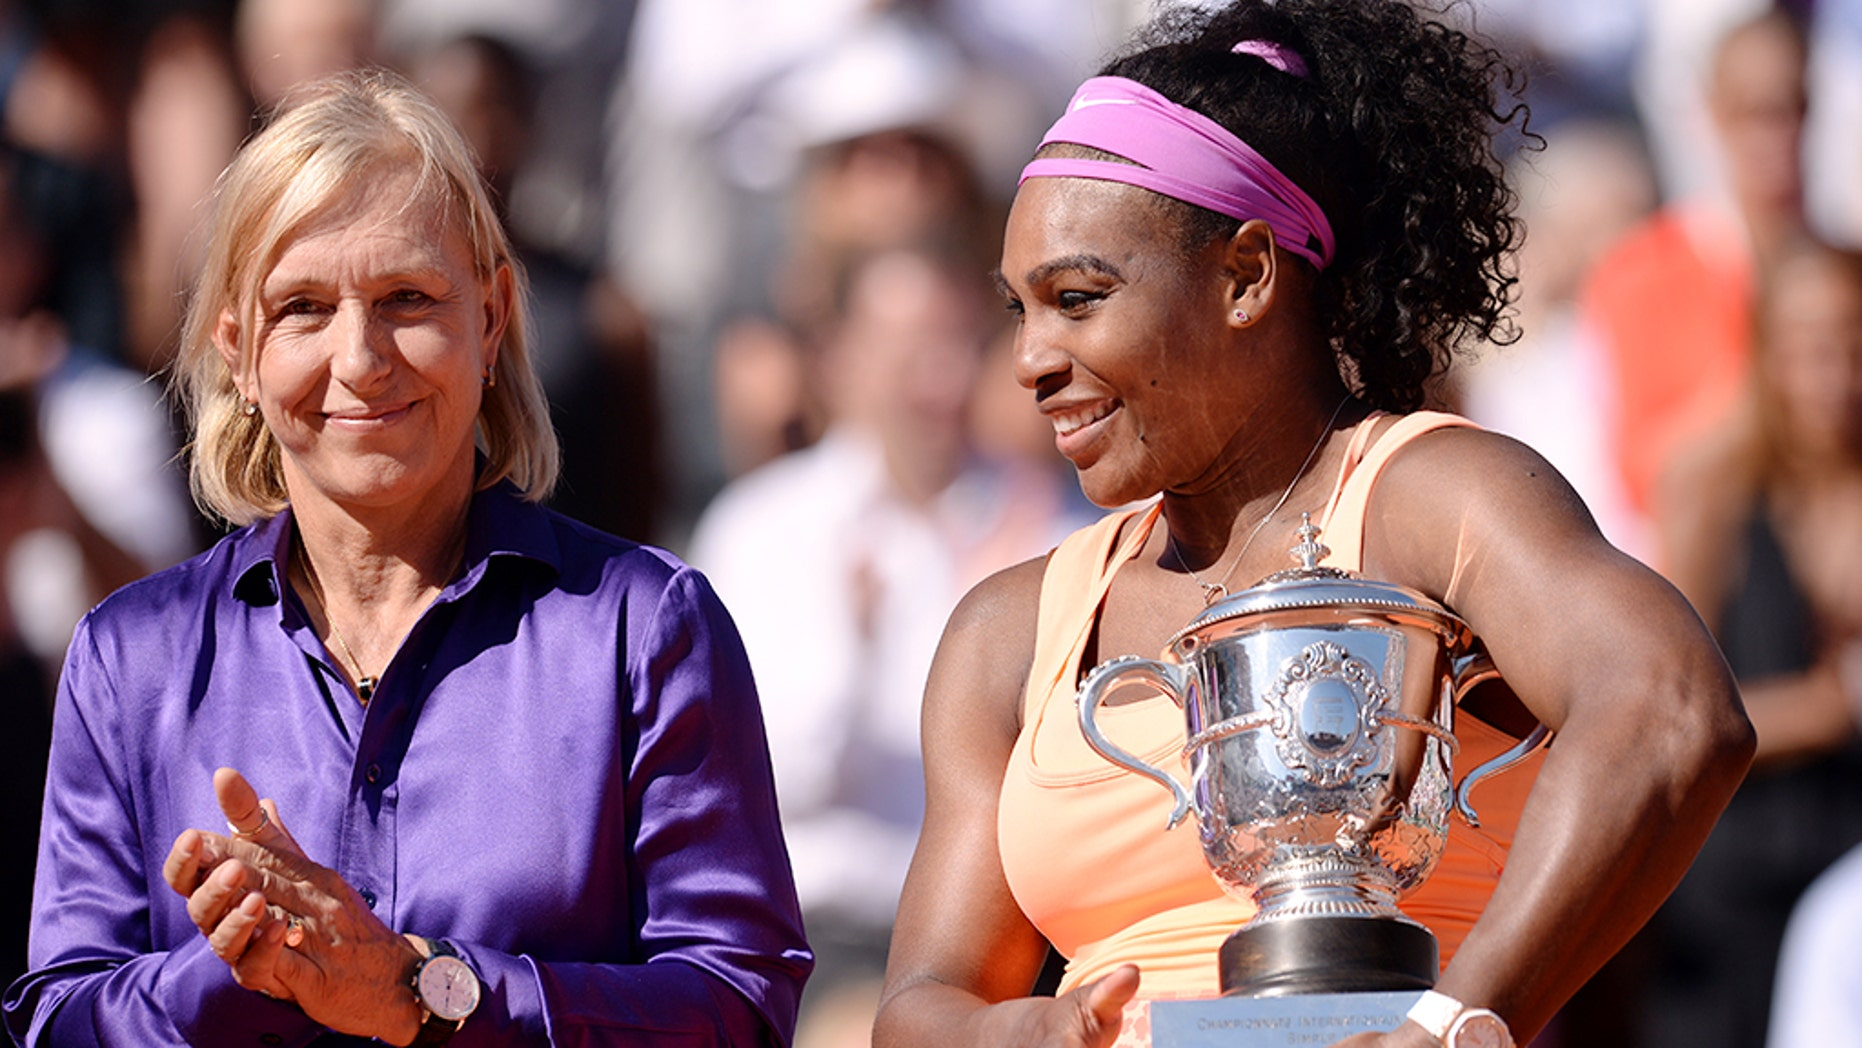 Martina Navratilova applauding Serena Williams after Williams' victory in the 2015 French Open women's singles final.